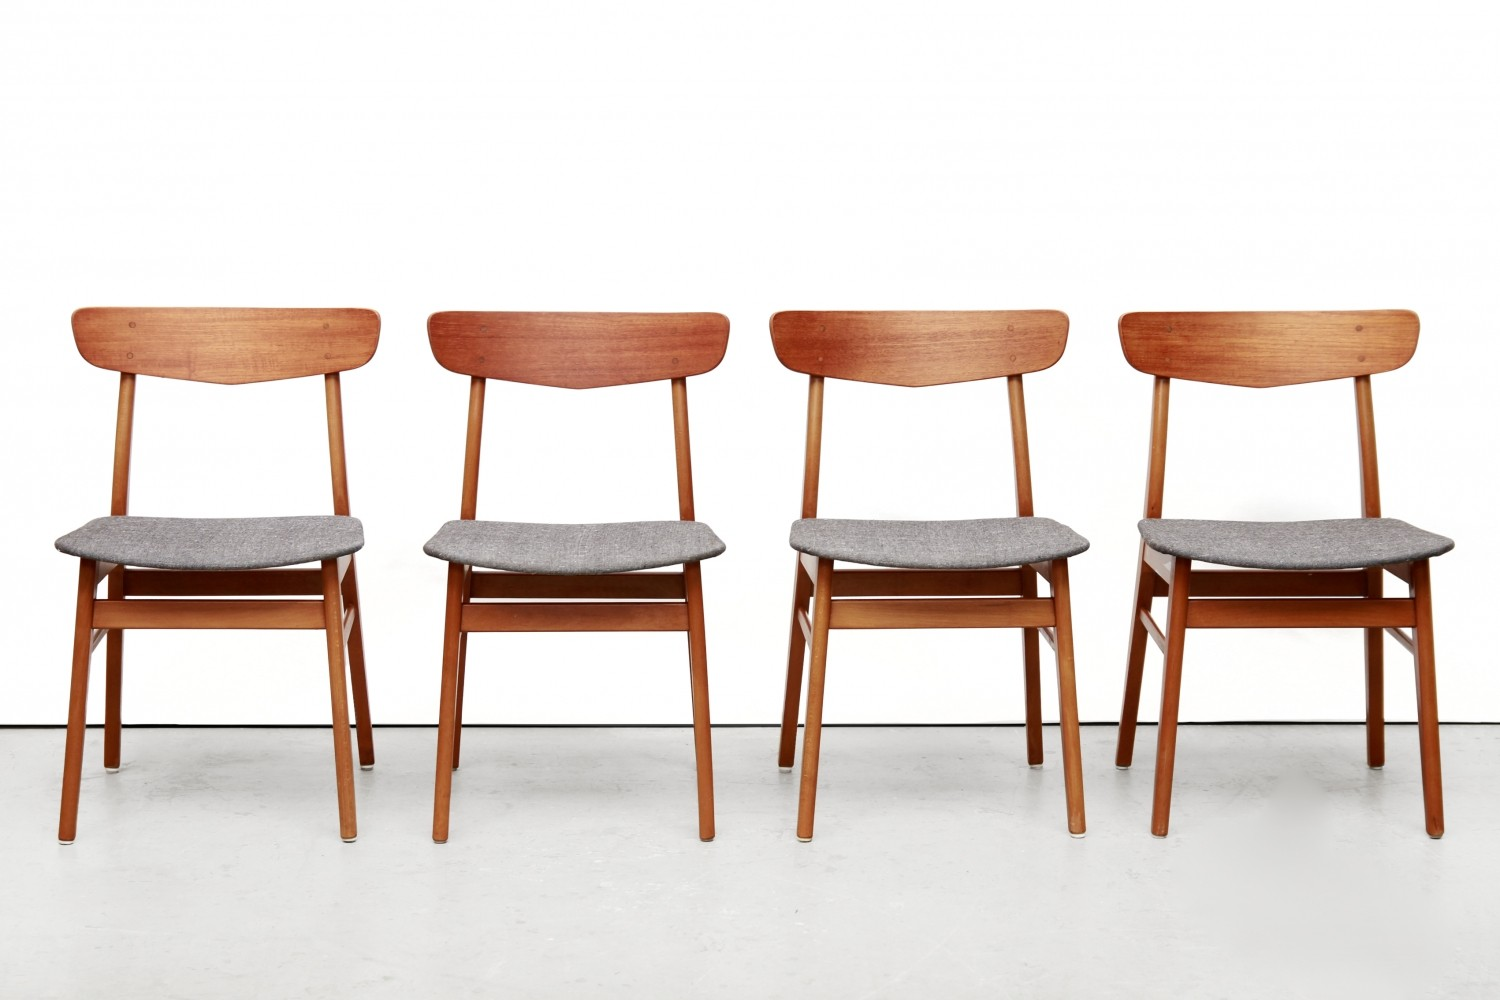 Set of 4 Farstrup dinner chairs, 1960s